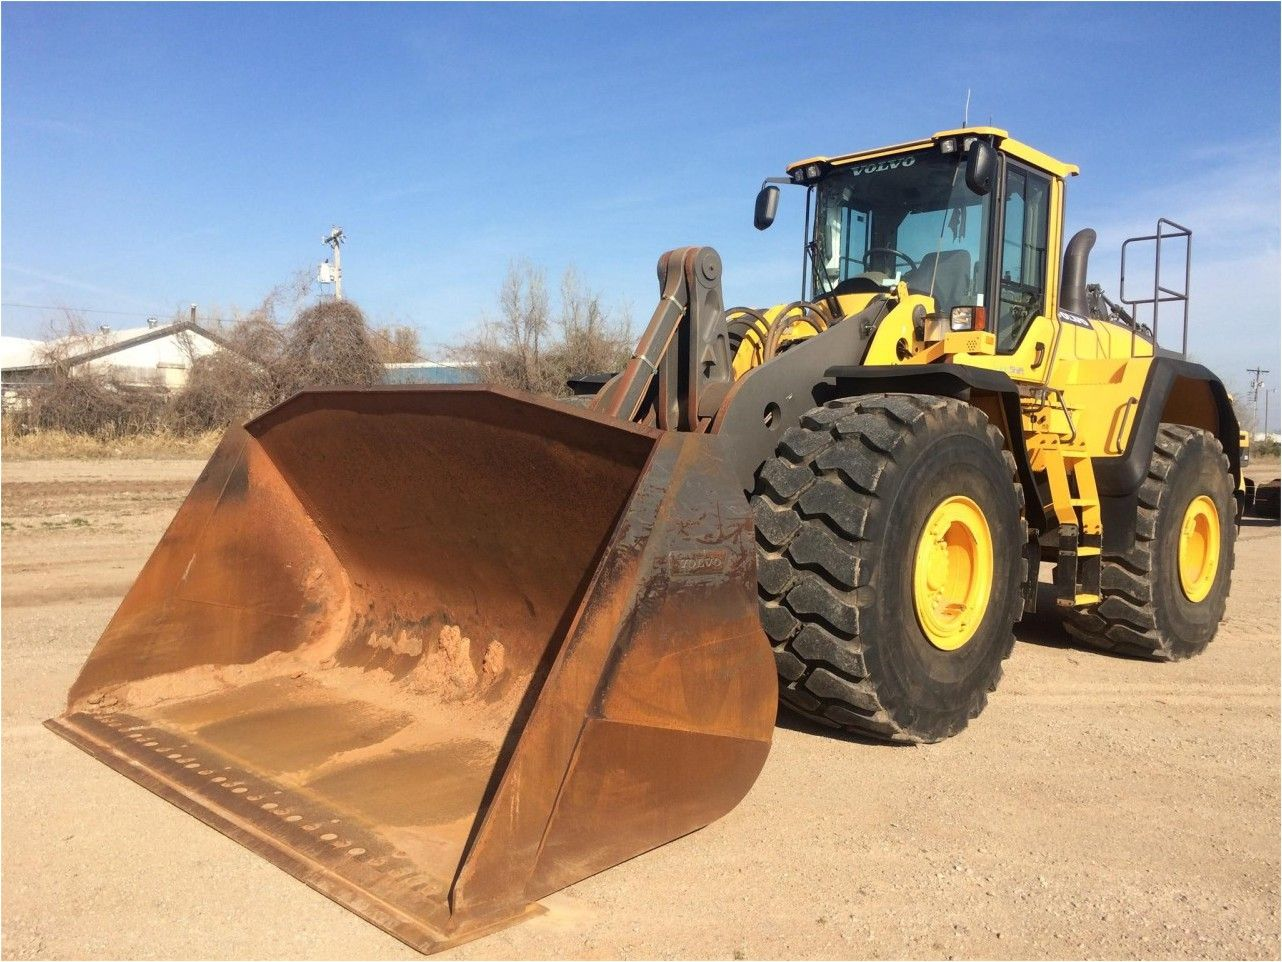 Our Featured Wheel Loader is a 2014 Volvo L220G, ROPS Cab